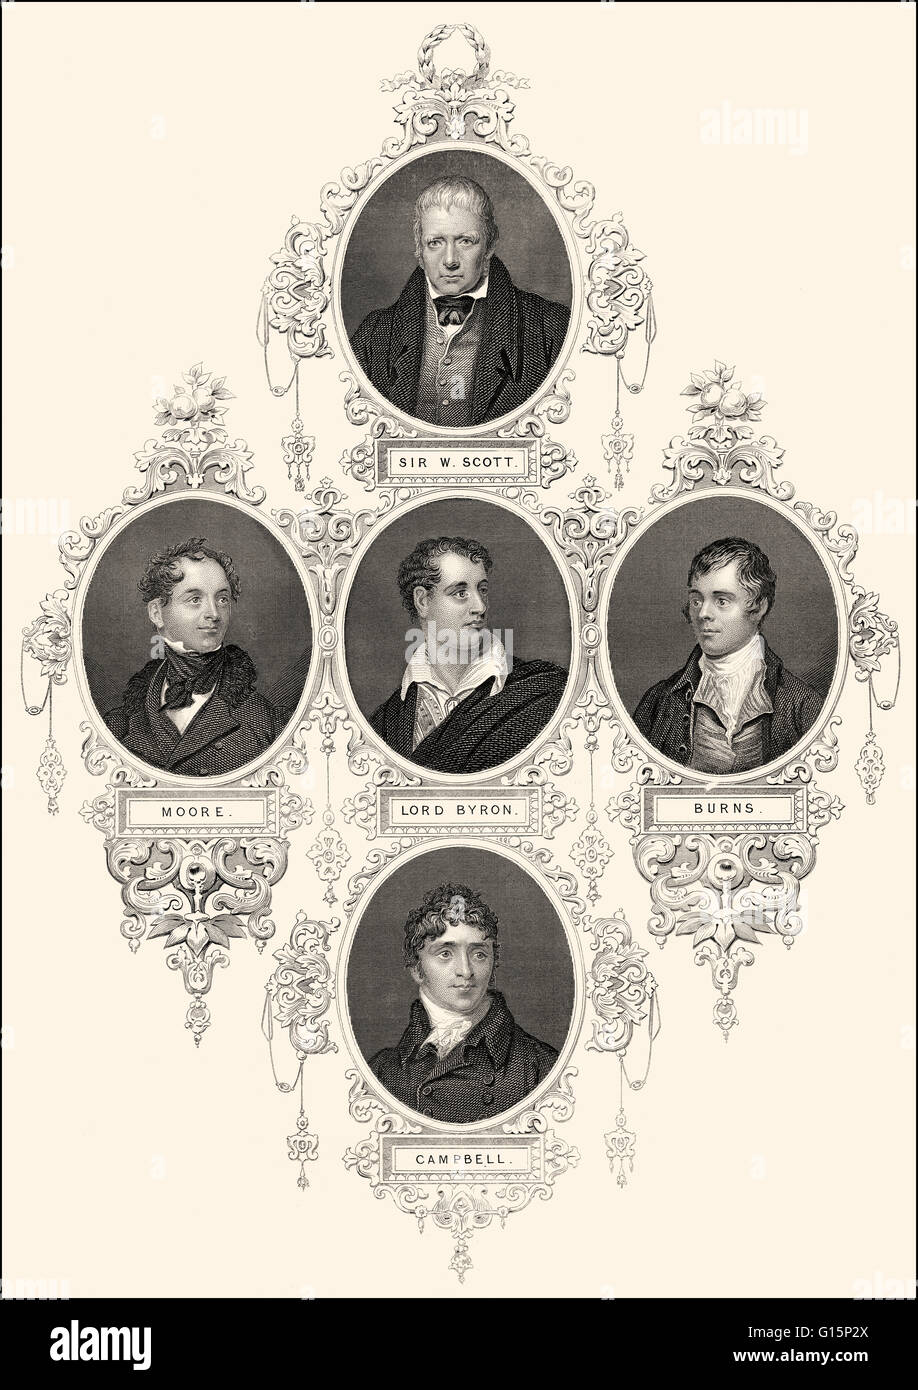 British writers, 18th and 19th century, Sir Walter Scott, Thomas Moore, Lord Byron, Thomas Campbell - Stock Image